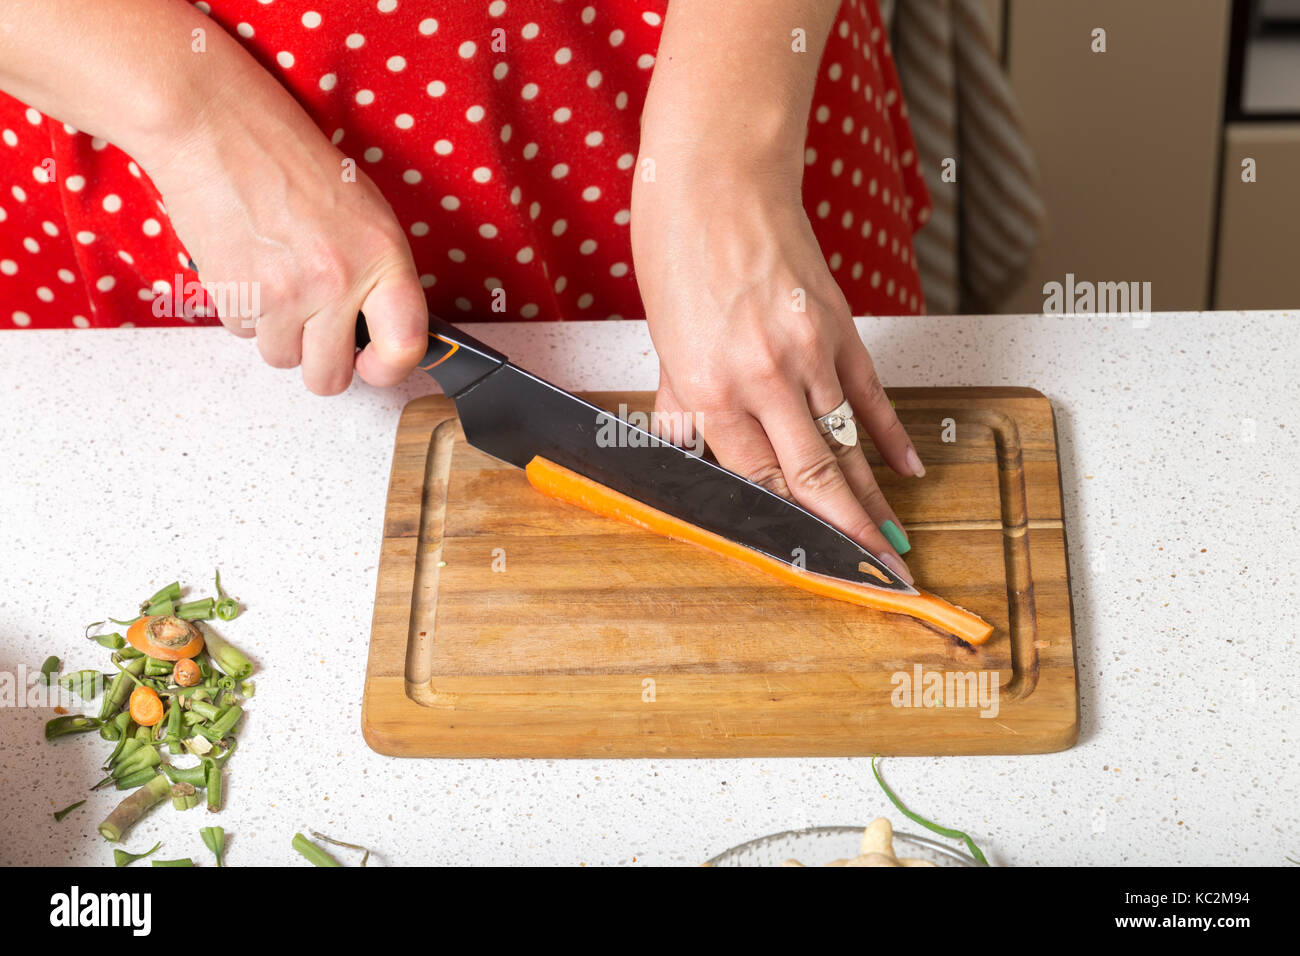 Young female close up on cutting carrot - Stock Image